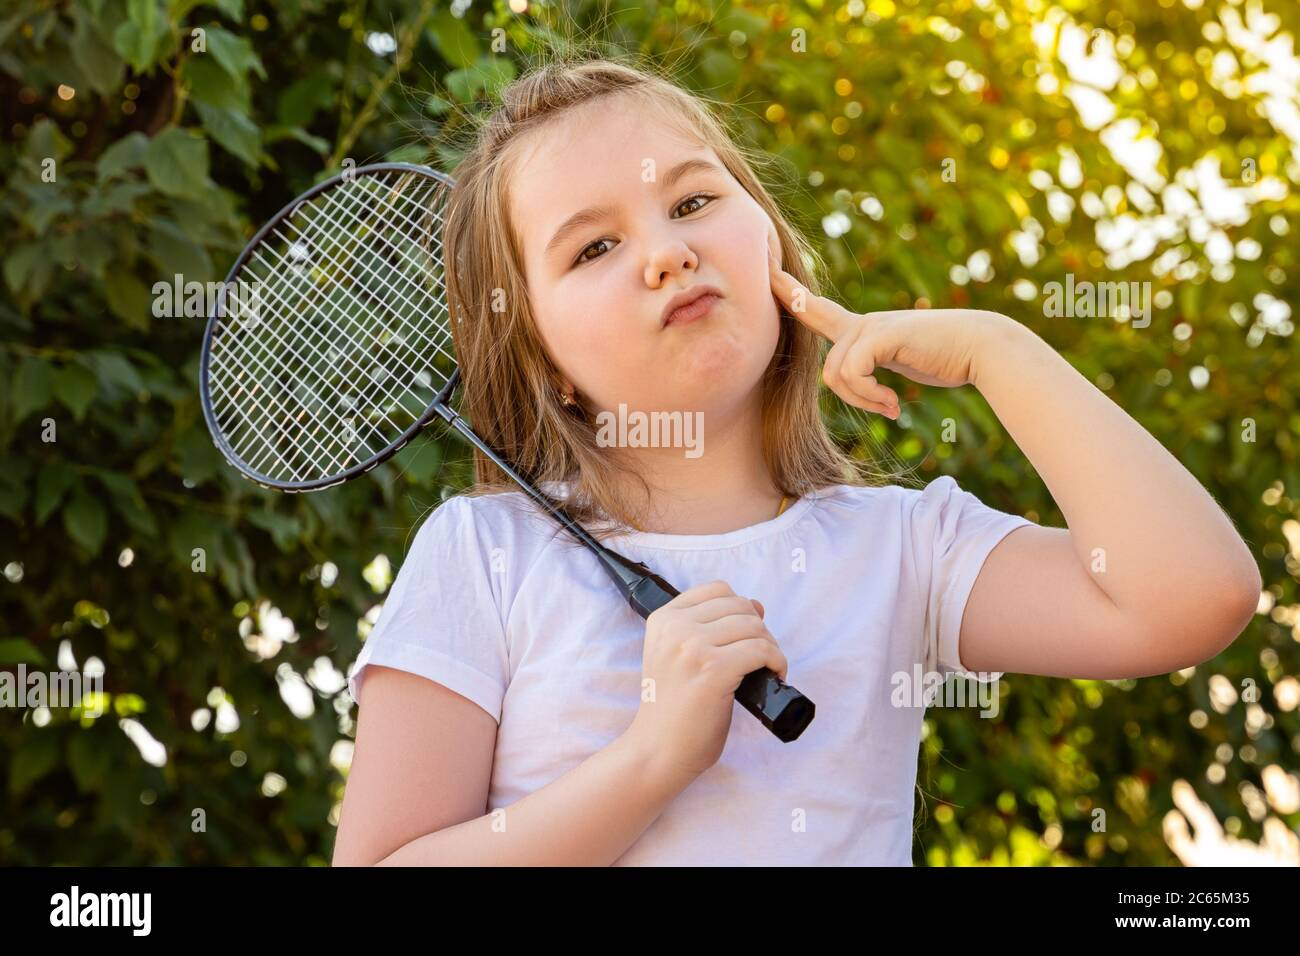 A little girl jokingly makes a glamorous face. Cute little girl playing badminton outdoors on warm and sunny summer day. Stock Photo